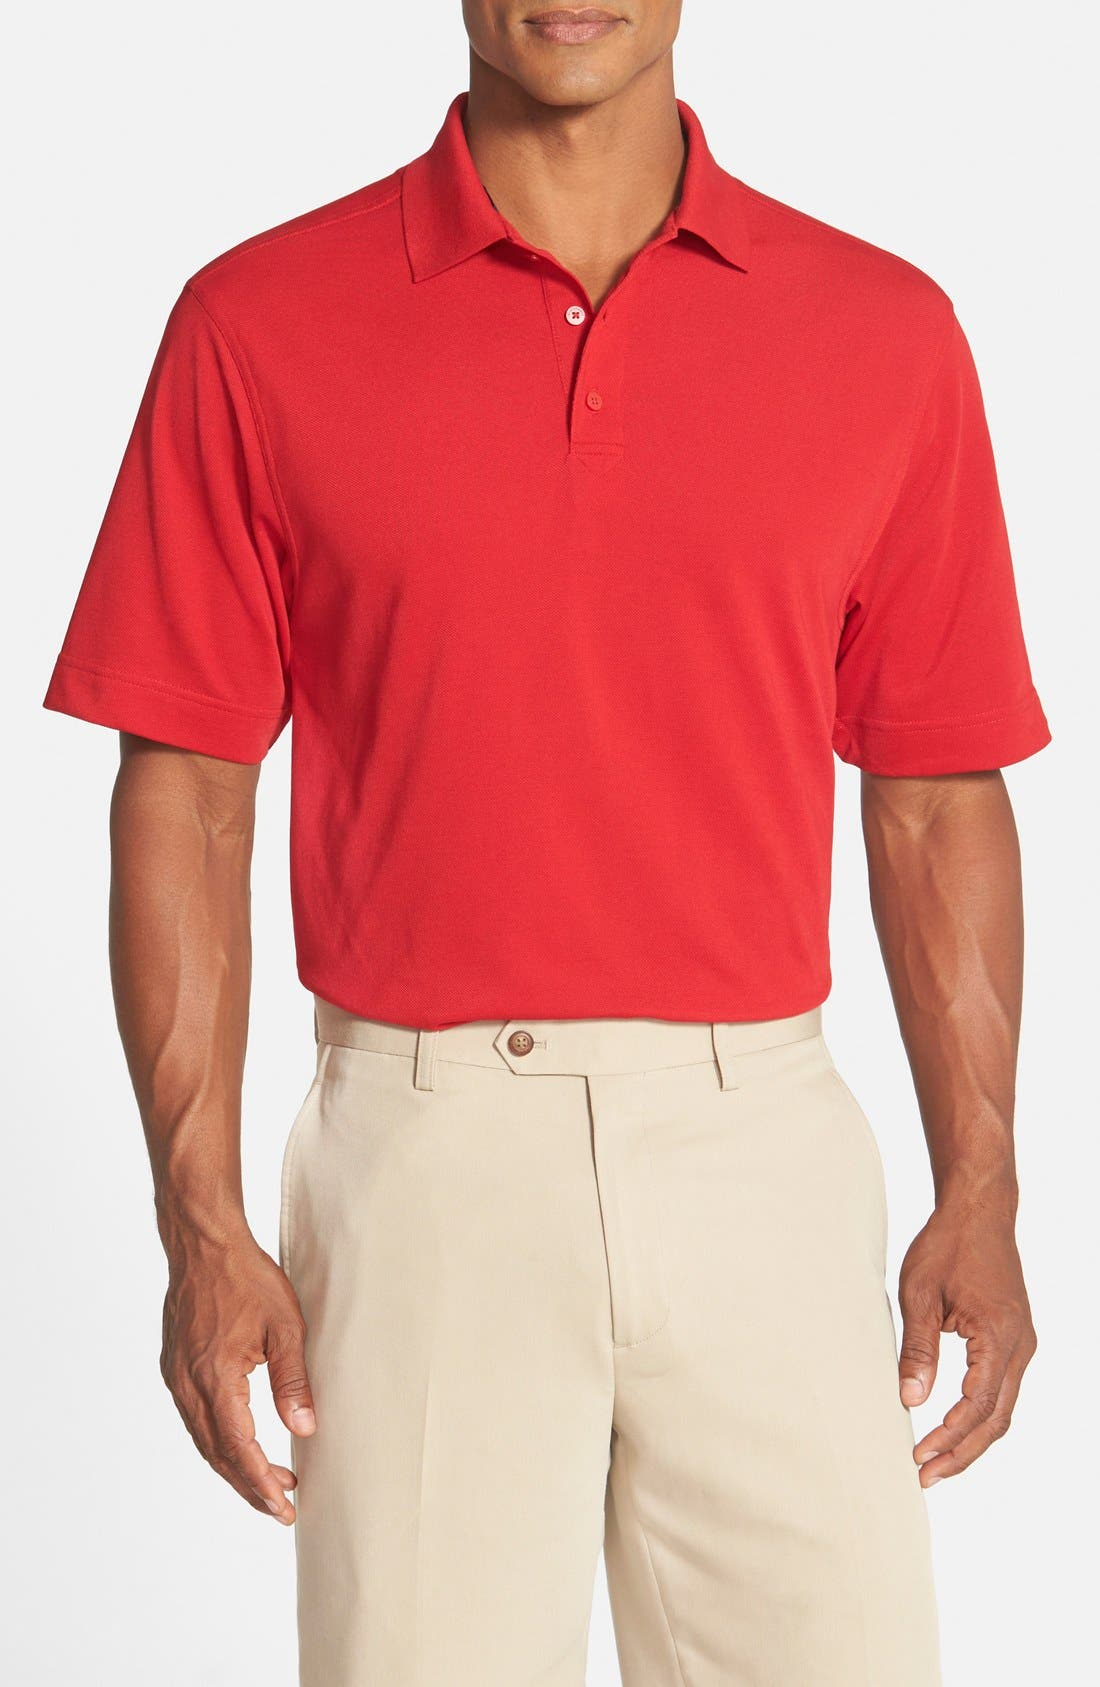 Cutter & Buck 'Championship' Classic Fit DryTec Golf Polo (Online Only)